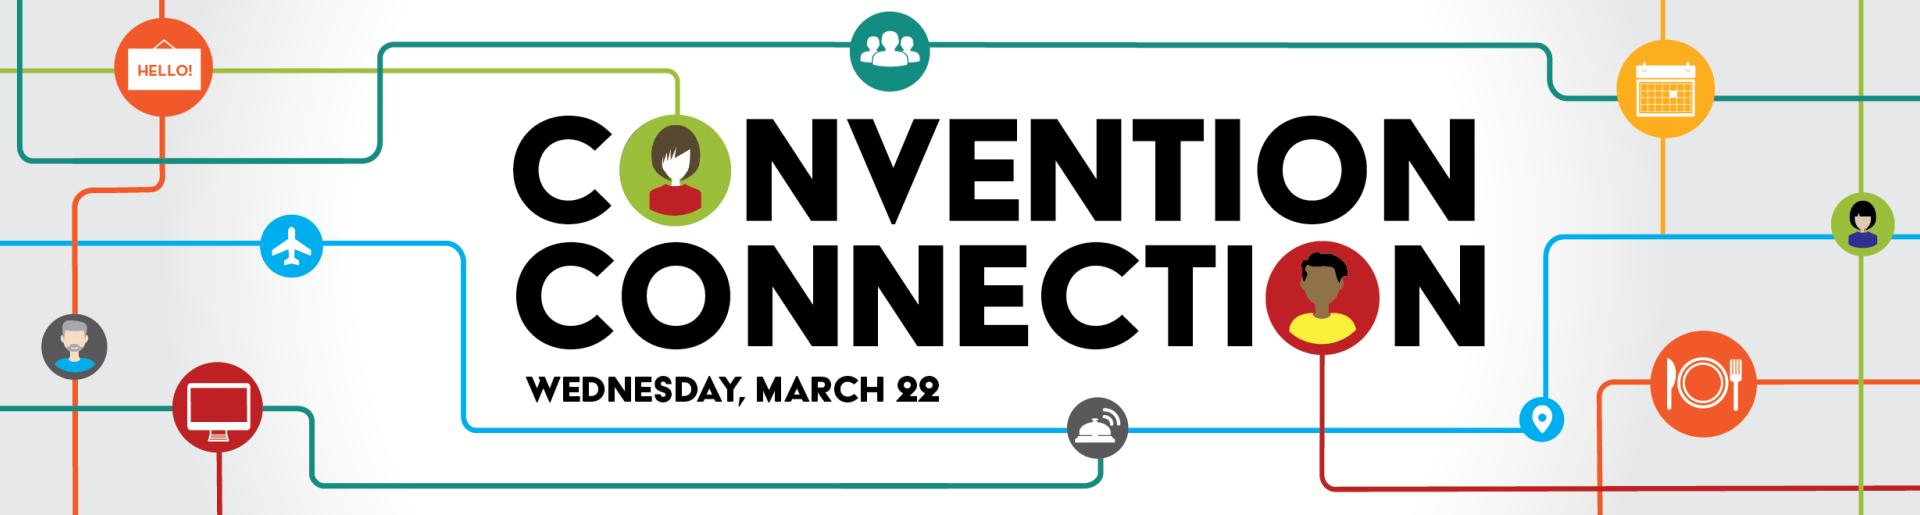 Convention Connection: Partner Event